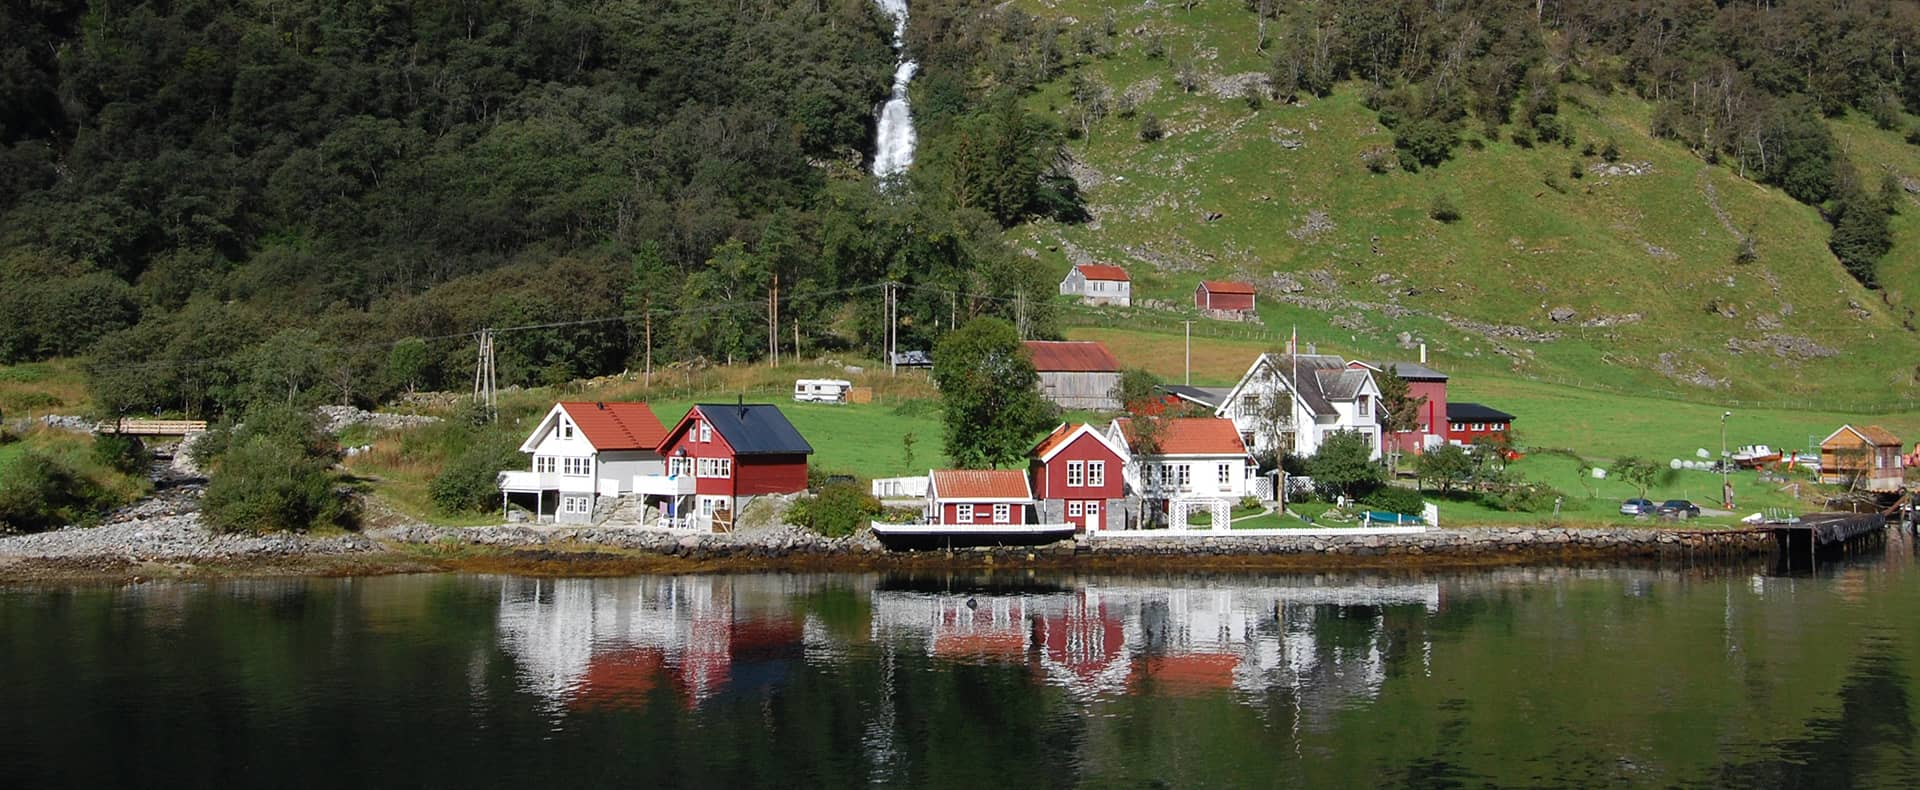 Scandinavia, Norway, Flam